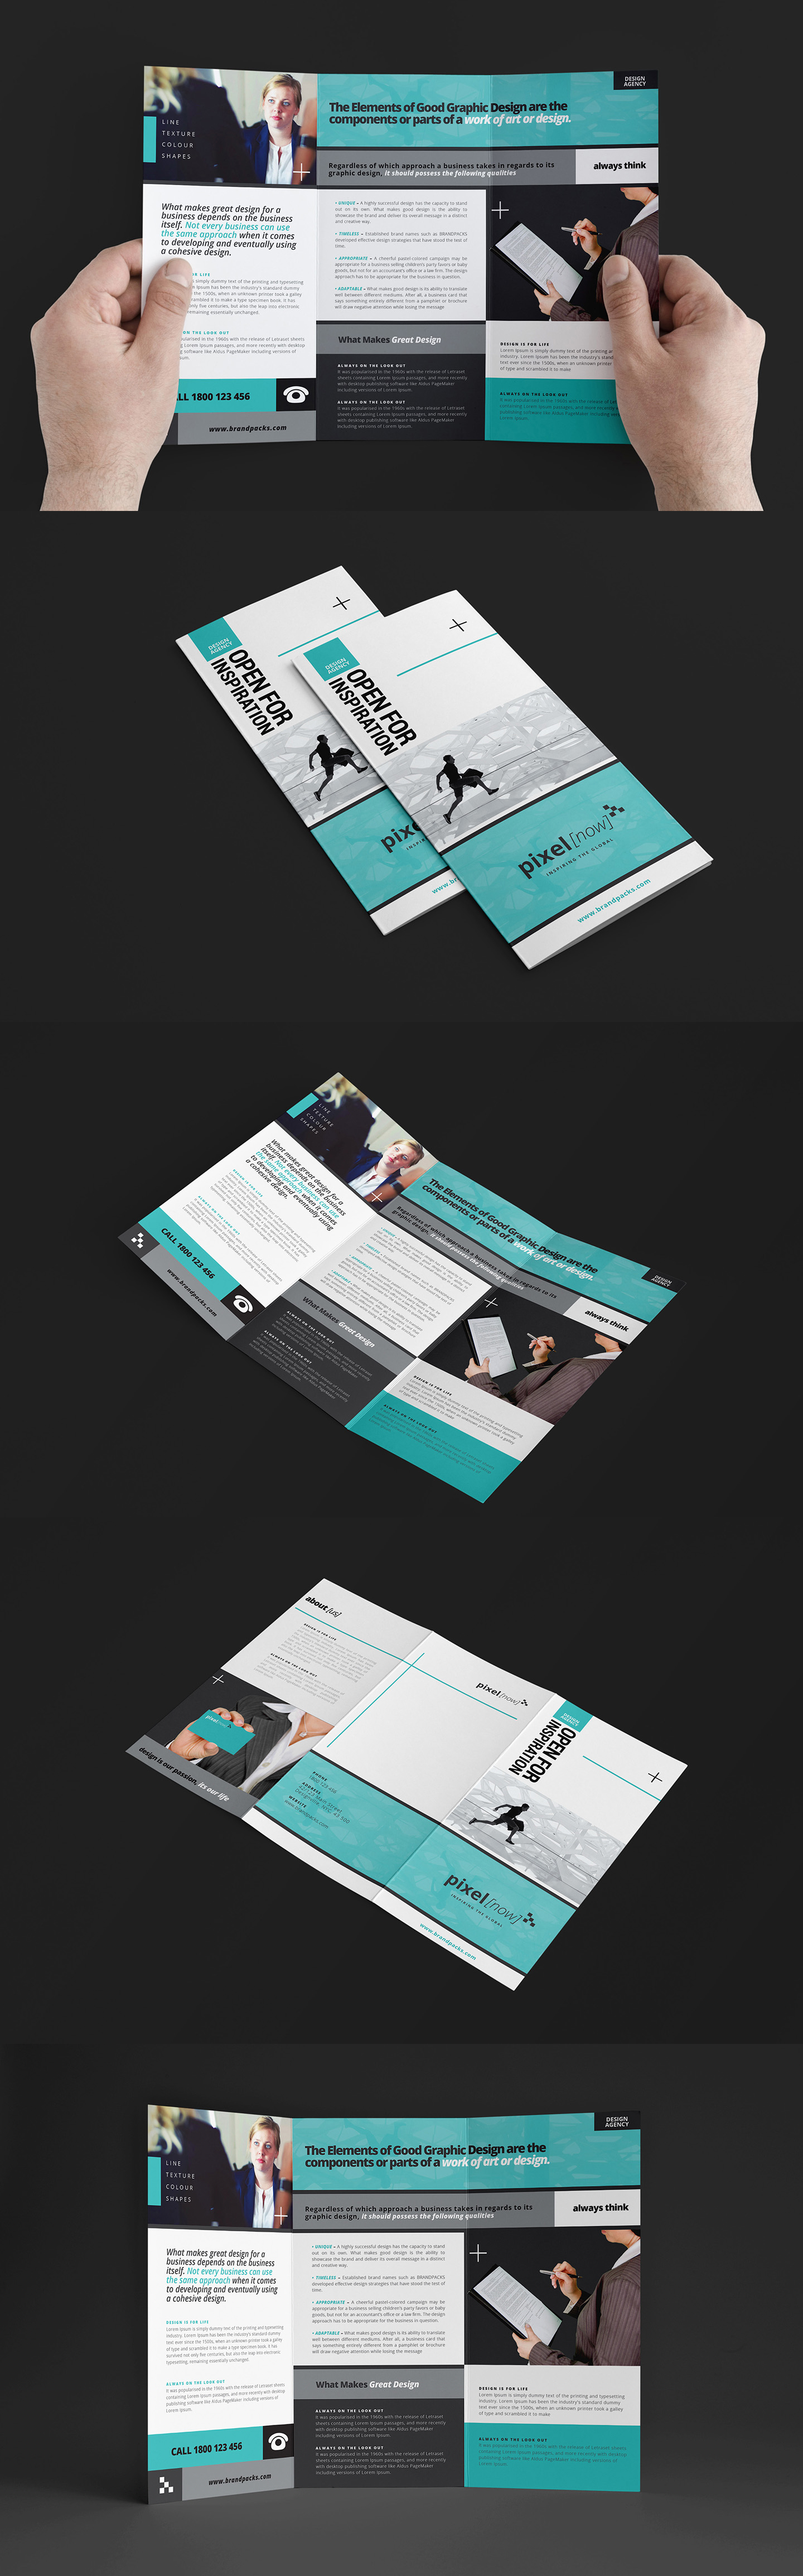 Free Business Trifold Brochure Template For Photoshop Illustrator - Photoshop tri fold brochure template free